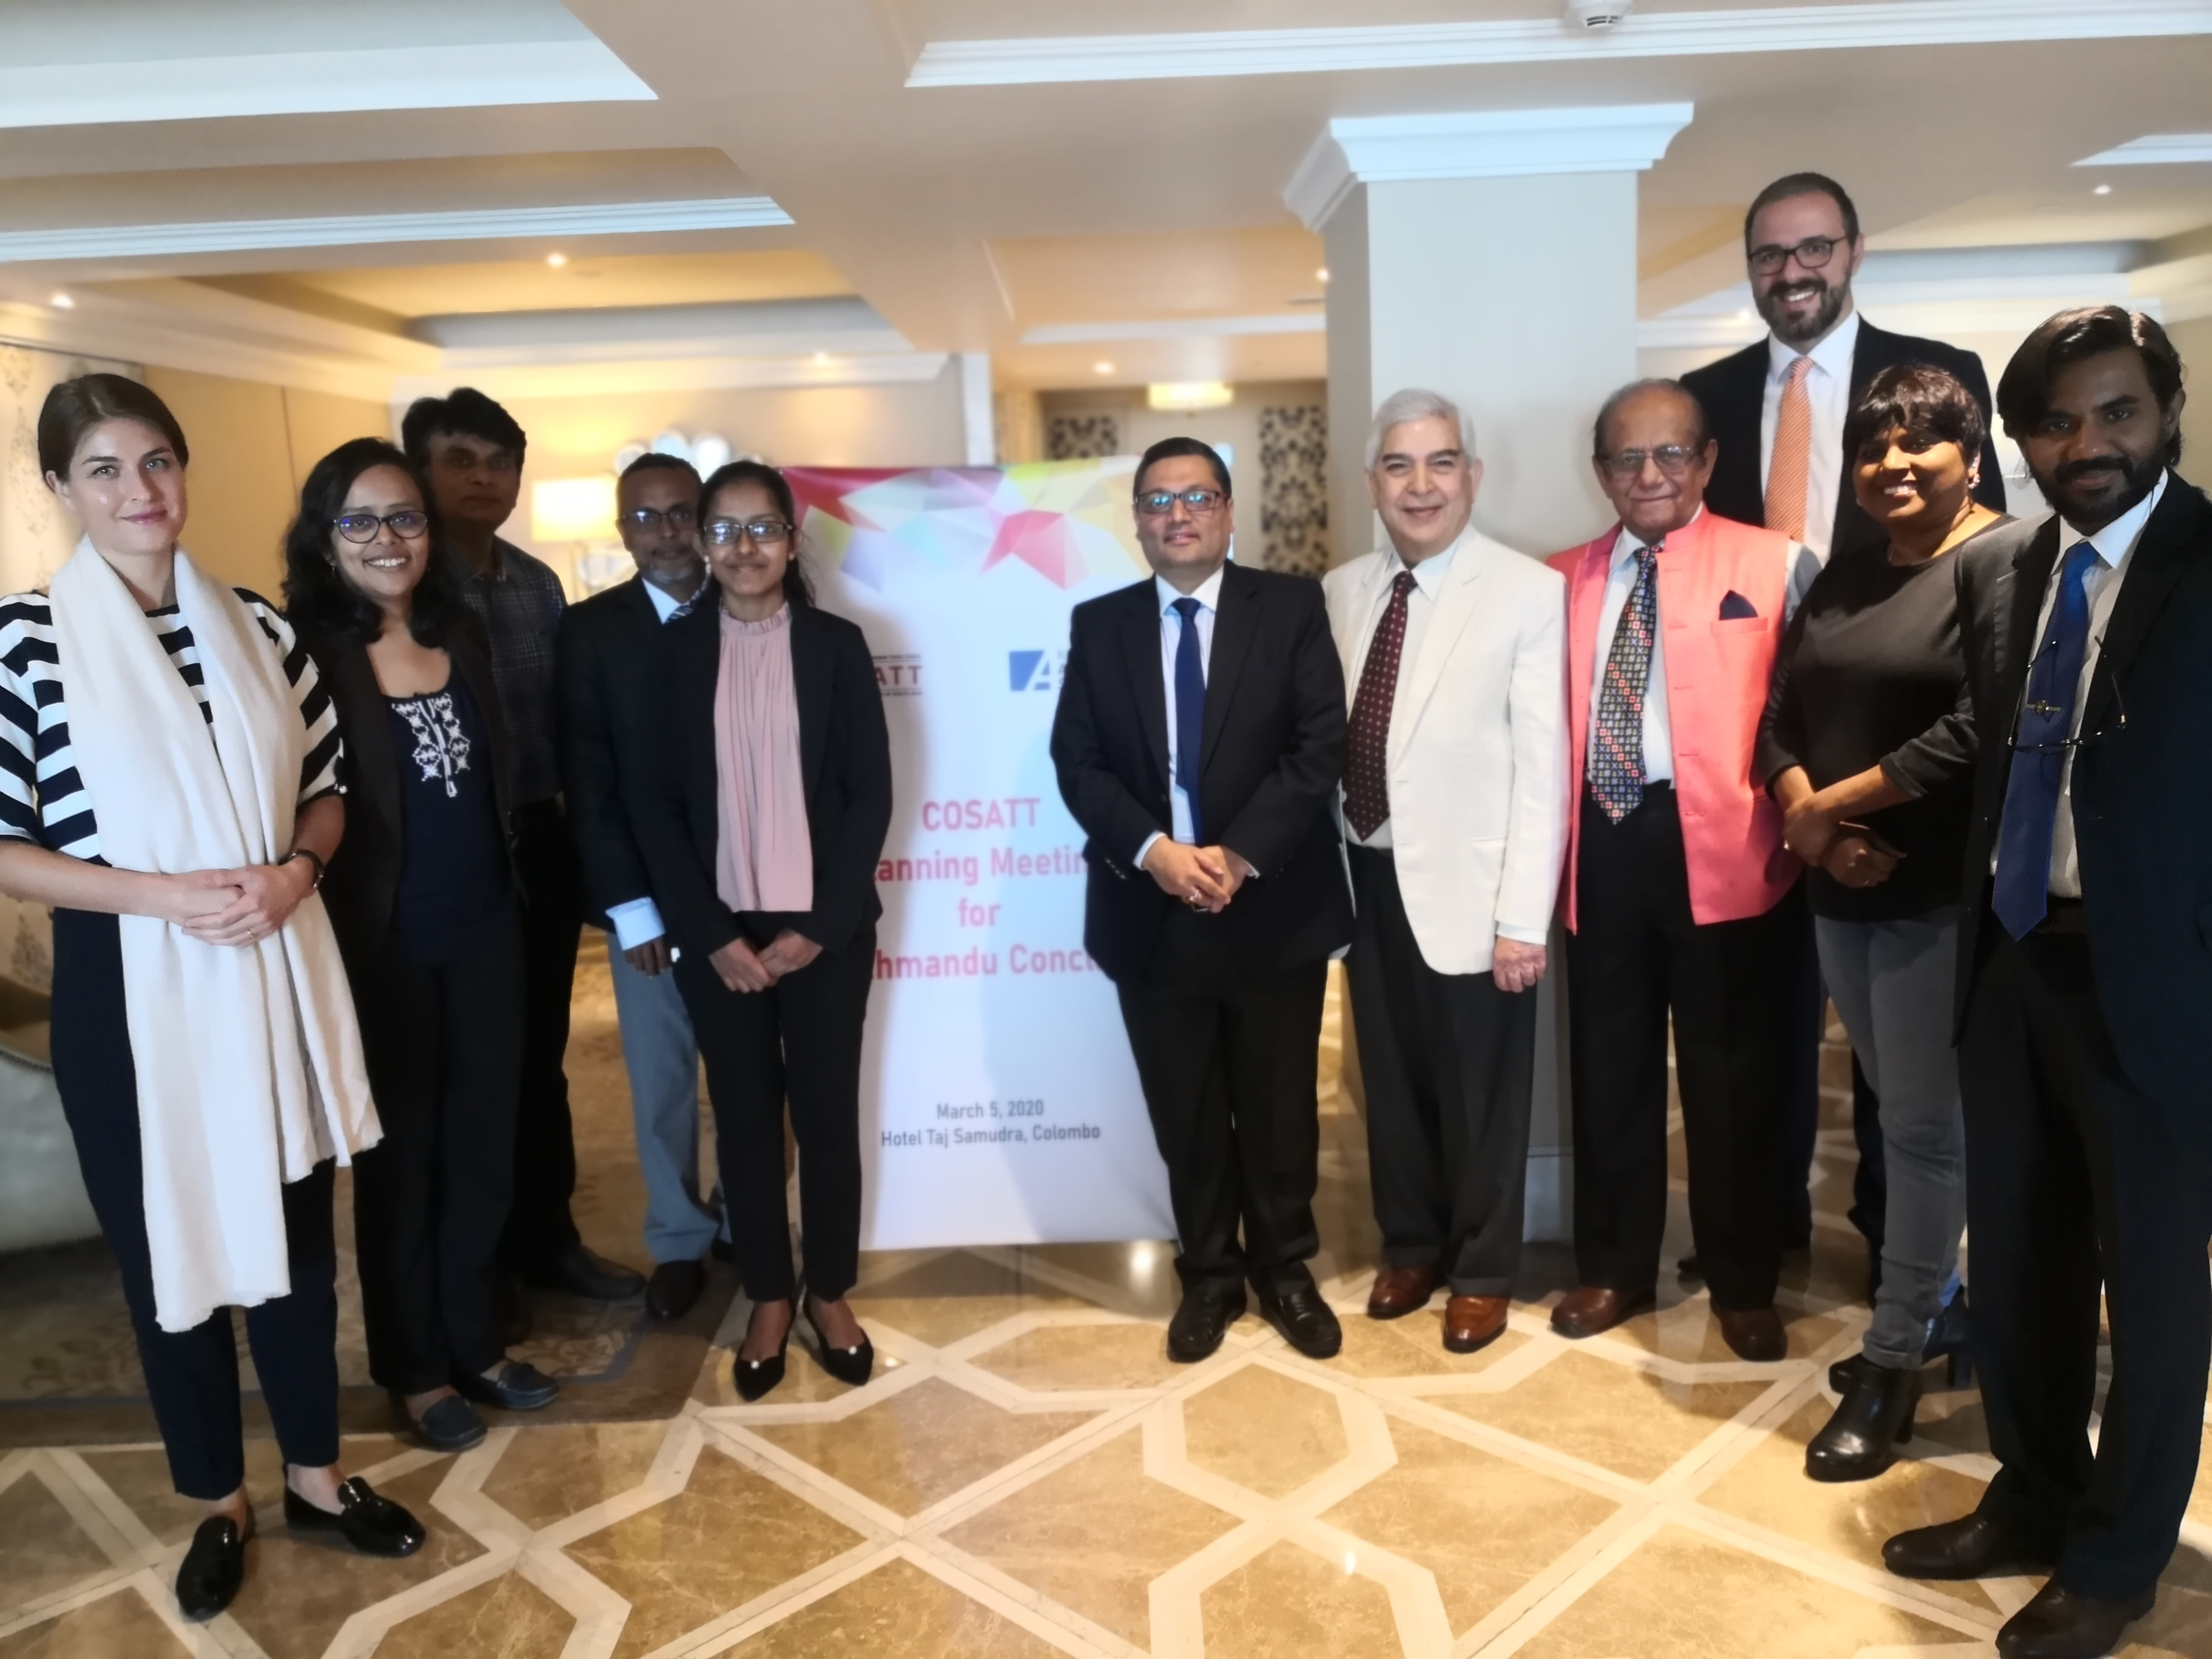 COSATT Planning Meeting on the proposed Kathmandu Conclave held in Colombo on March 5, 2020